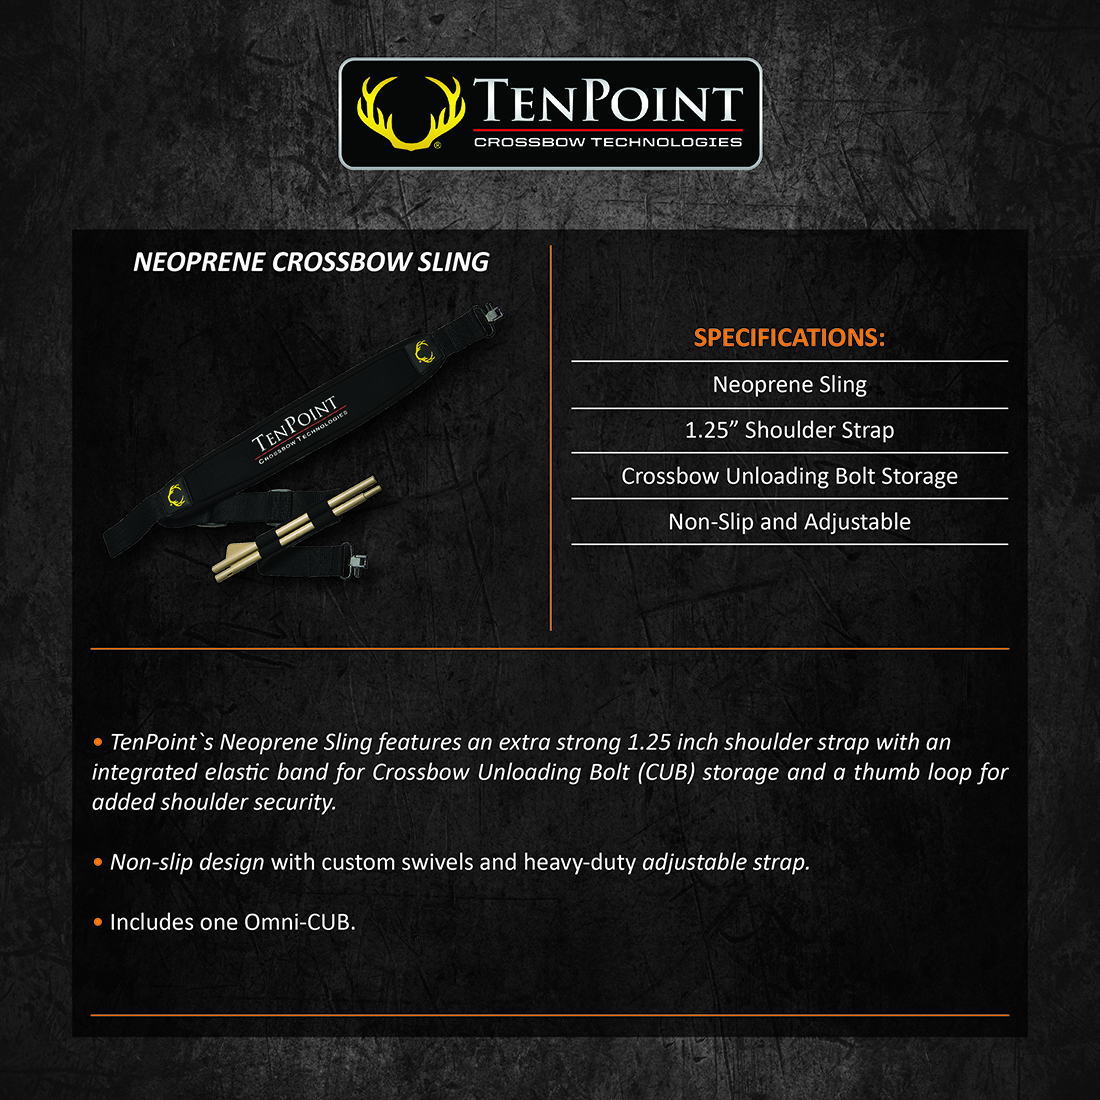 TenPoint_Crossbow_Sling_Product_Description